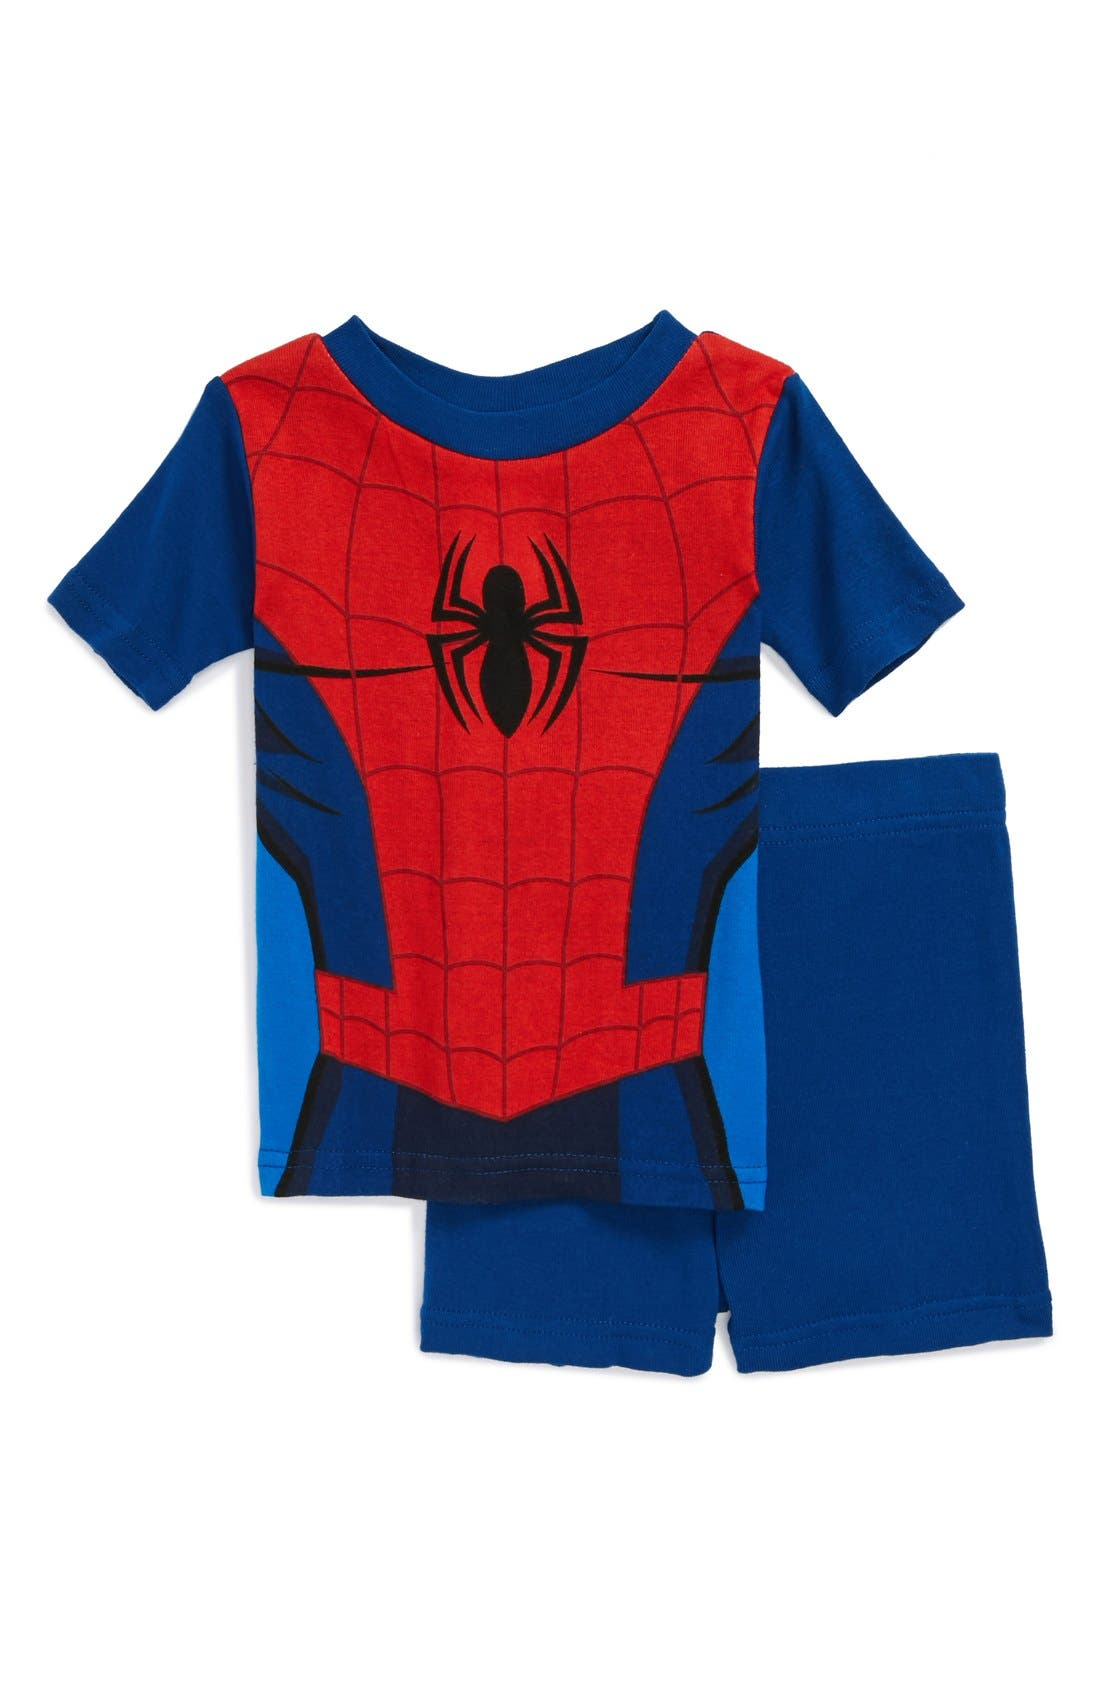 Alternate Image 1 Selected - Warner Brothers™ 'Spiderman™' Pajama Set (Toddler Boys)